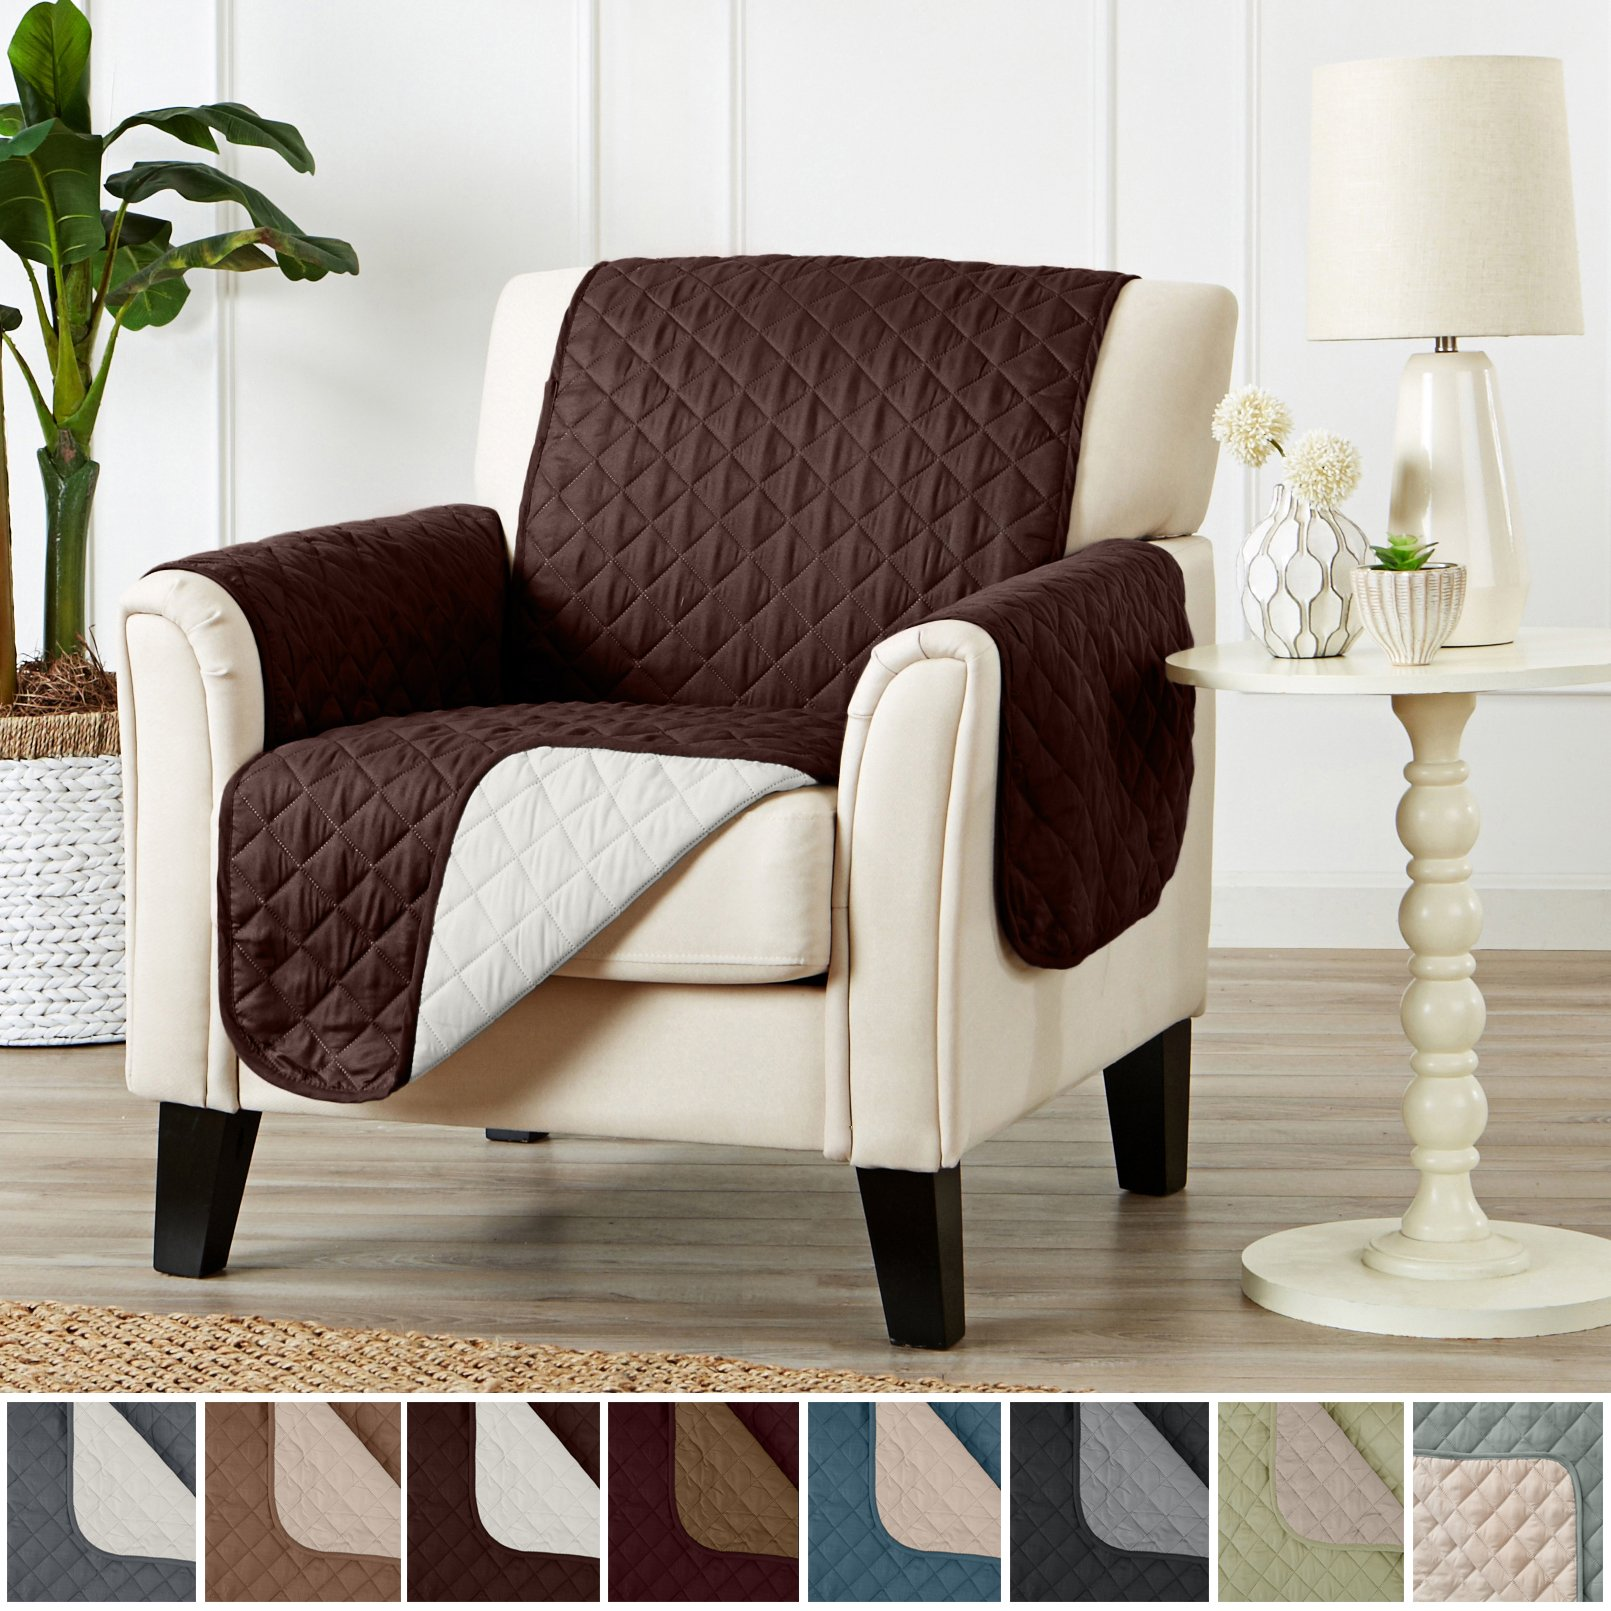 Home Fashion Designs Deluxe Reversible Quilted Furniture Protector and PET Protector. Two Fresh Looks in One. Perfect for Families with Pets and Kids Brand. (Chair - Chocolate/Flax)